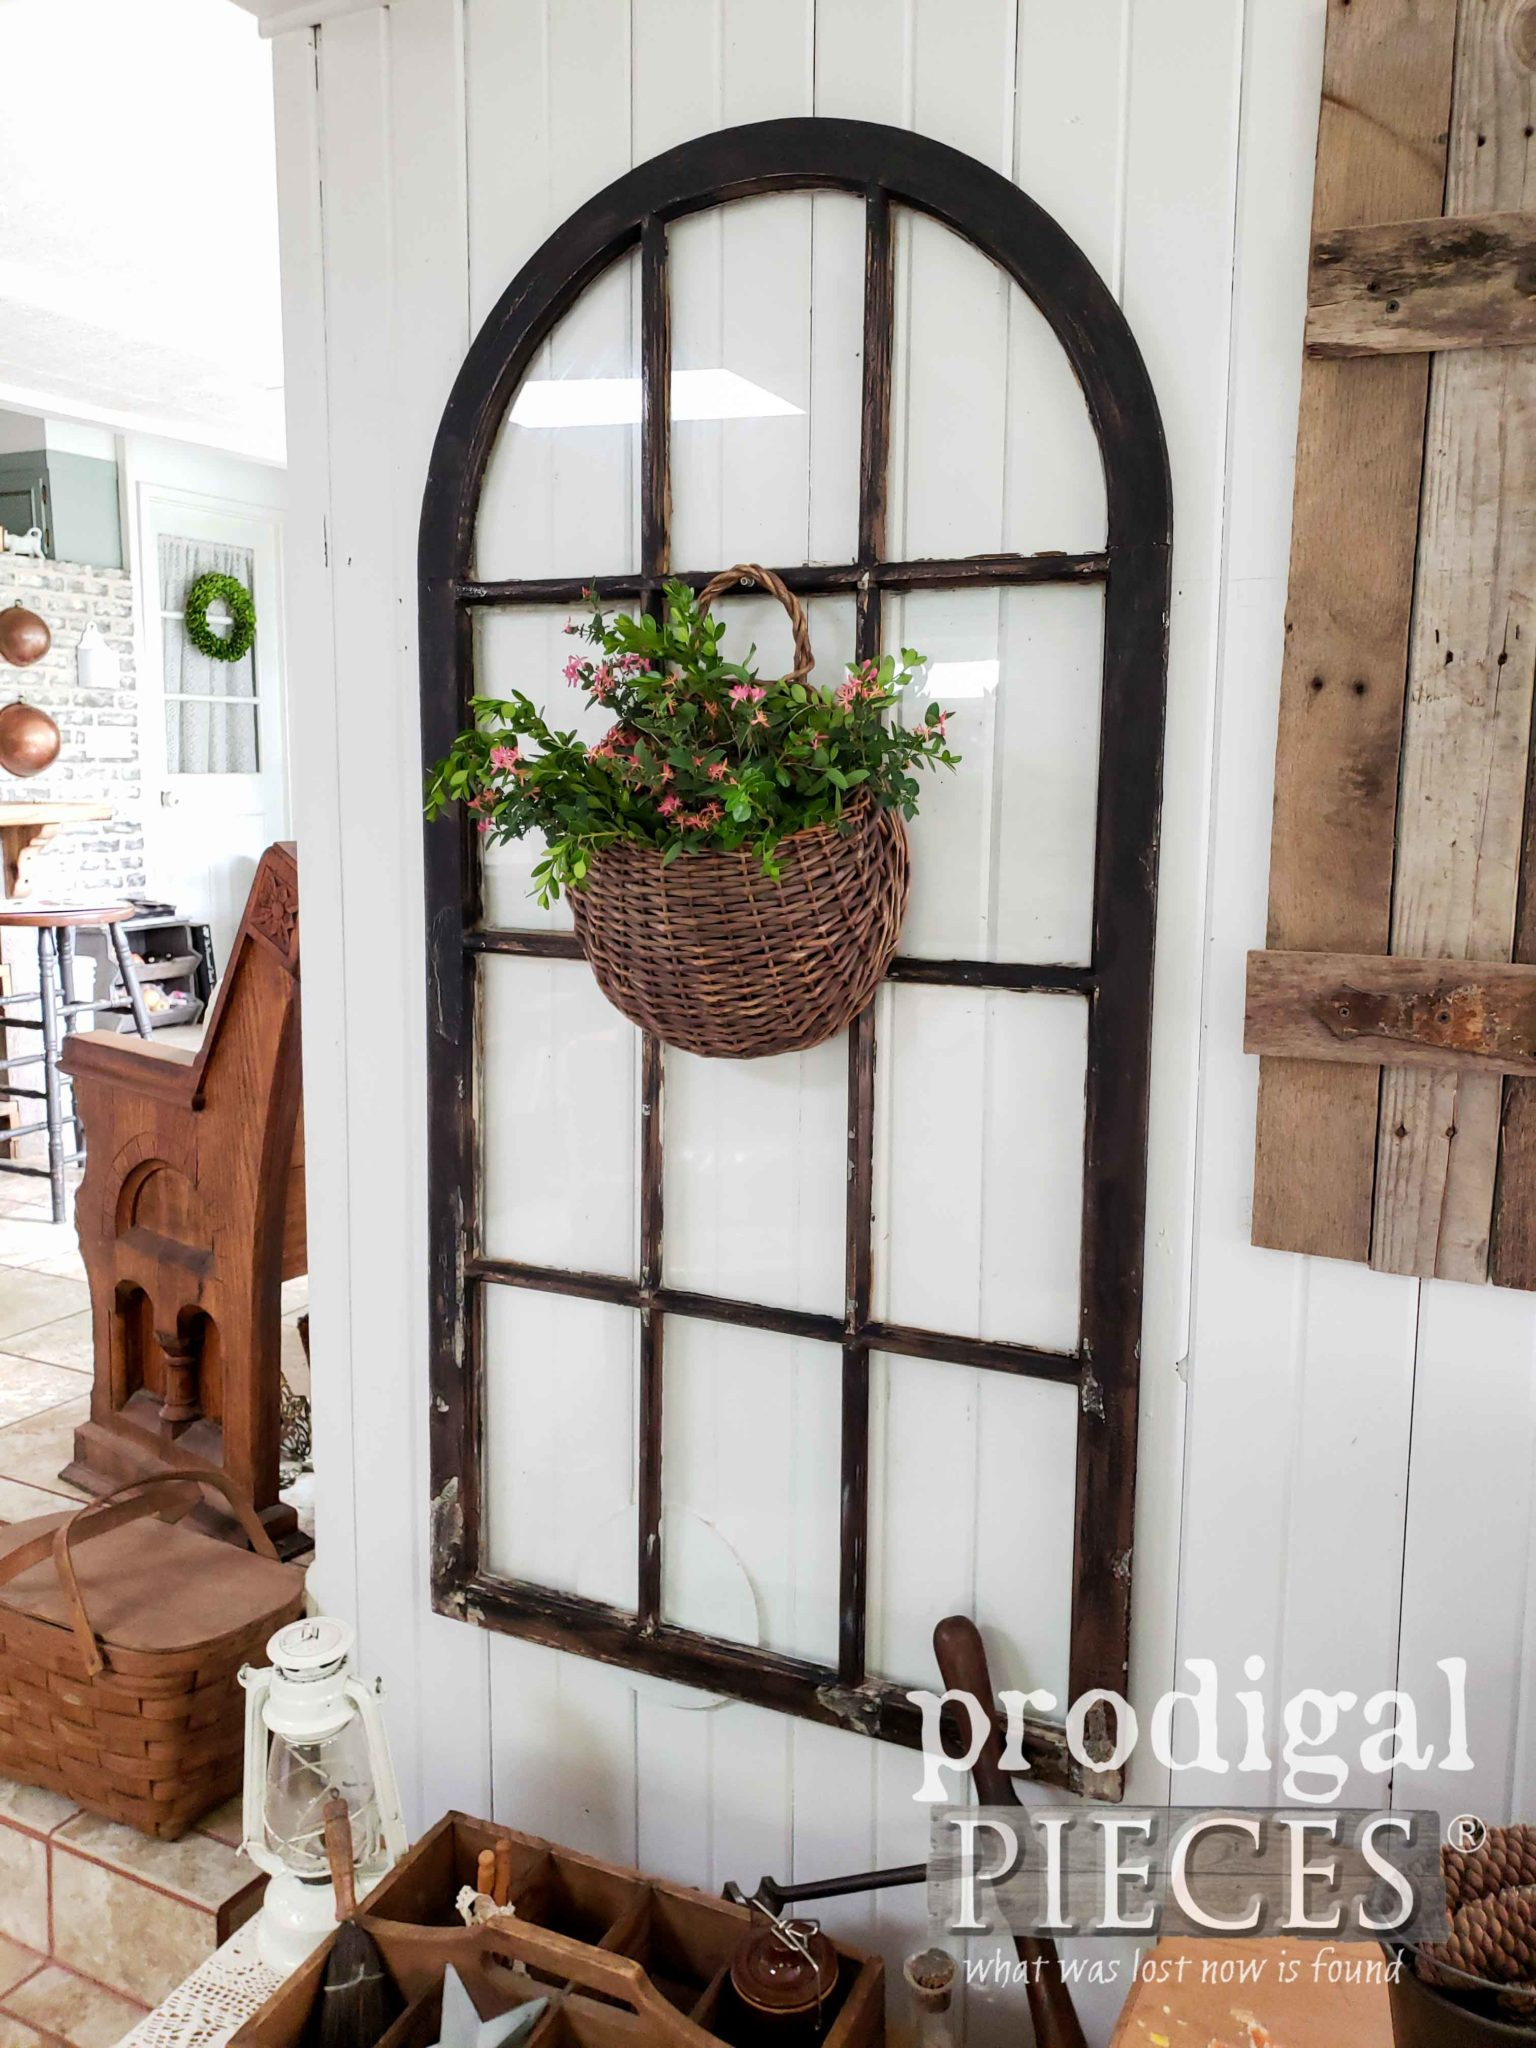 Farmhouse Living Room with Architectural Salvage Decor by Larissa of Prodigal Pieces | prodigalpieces.com